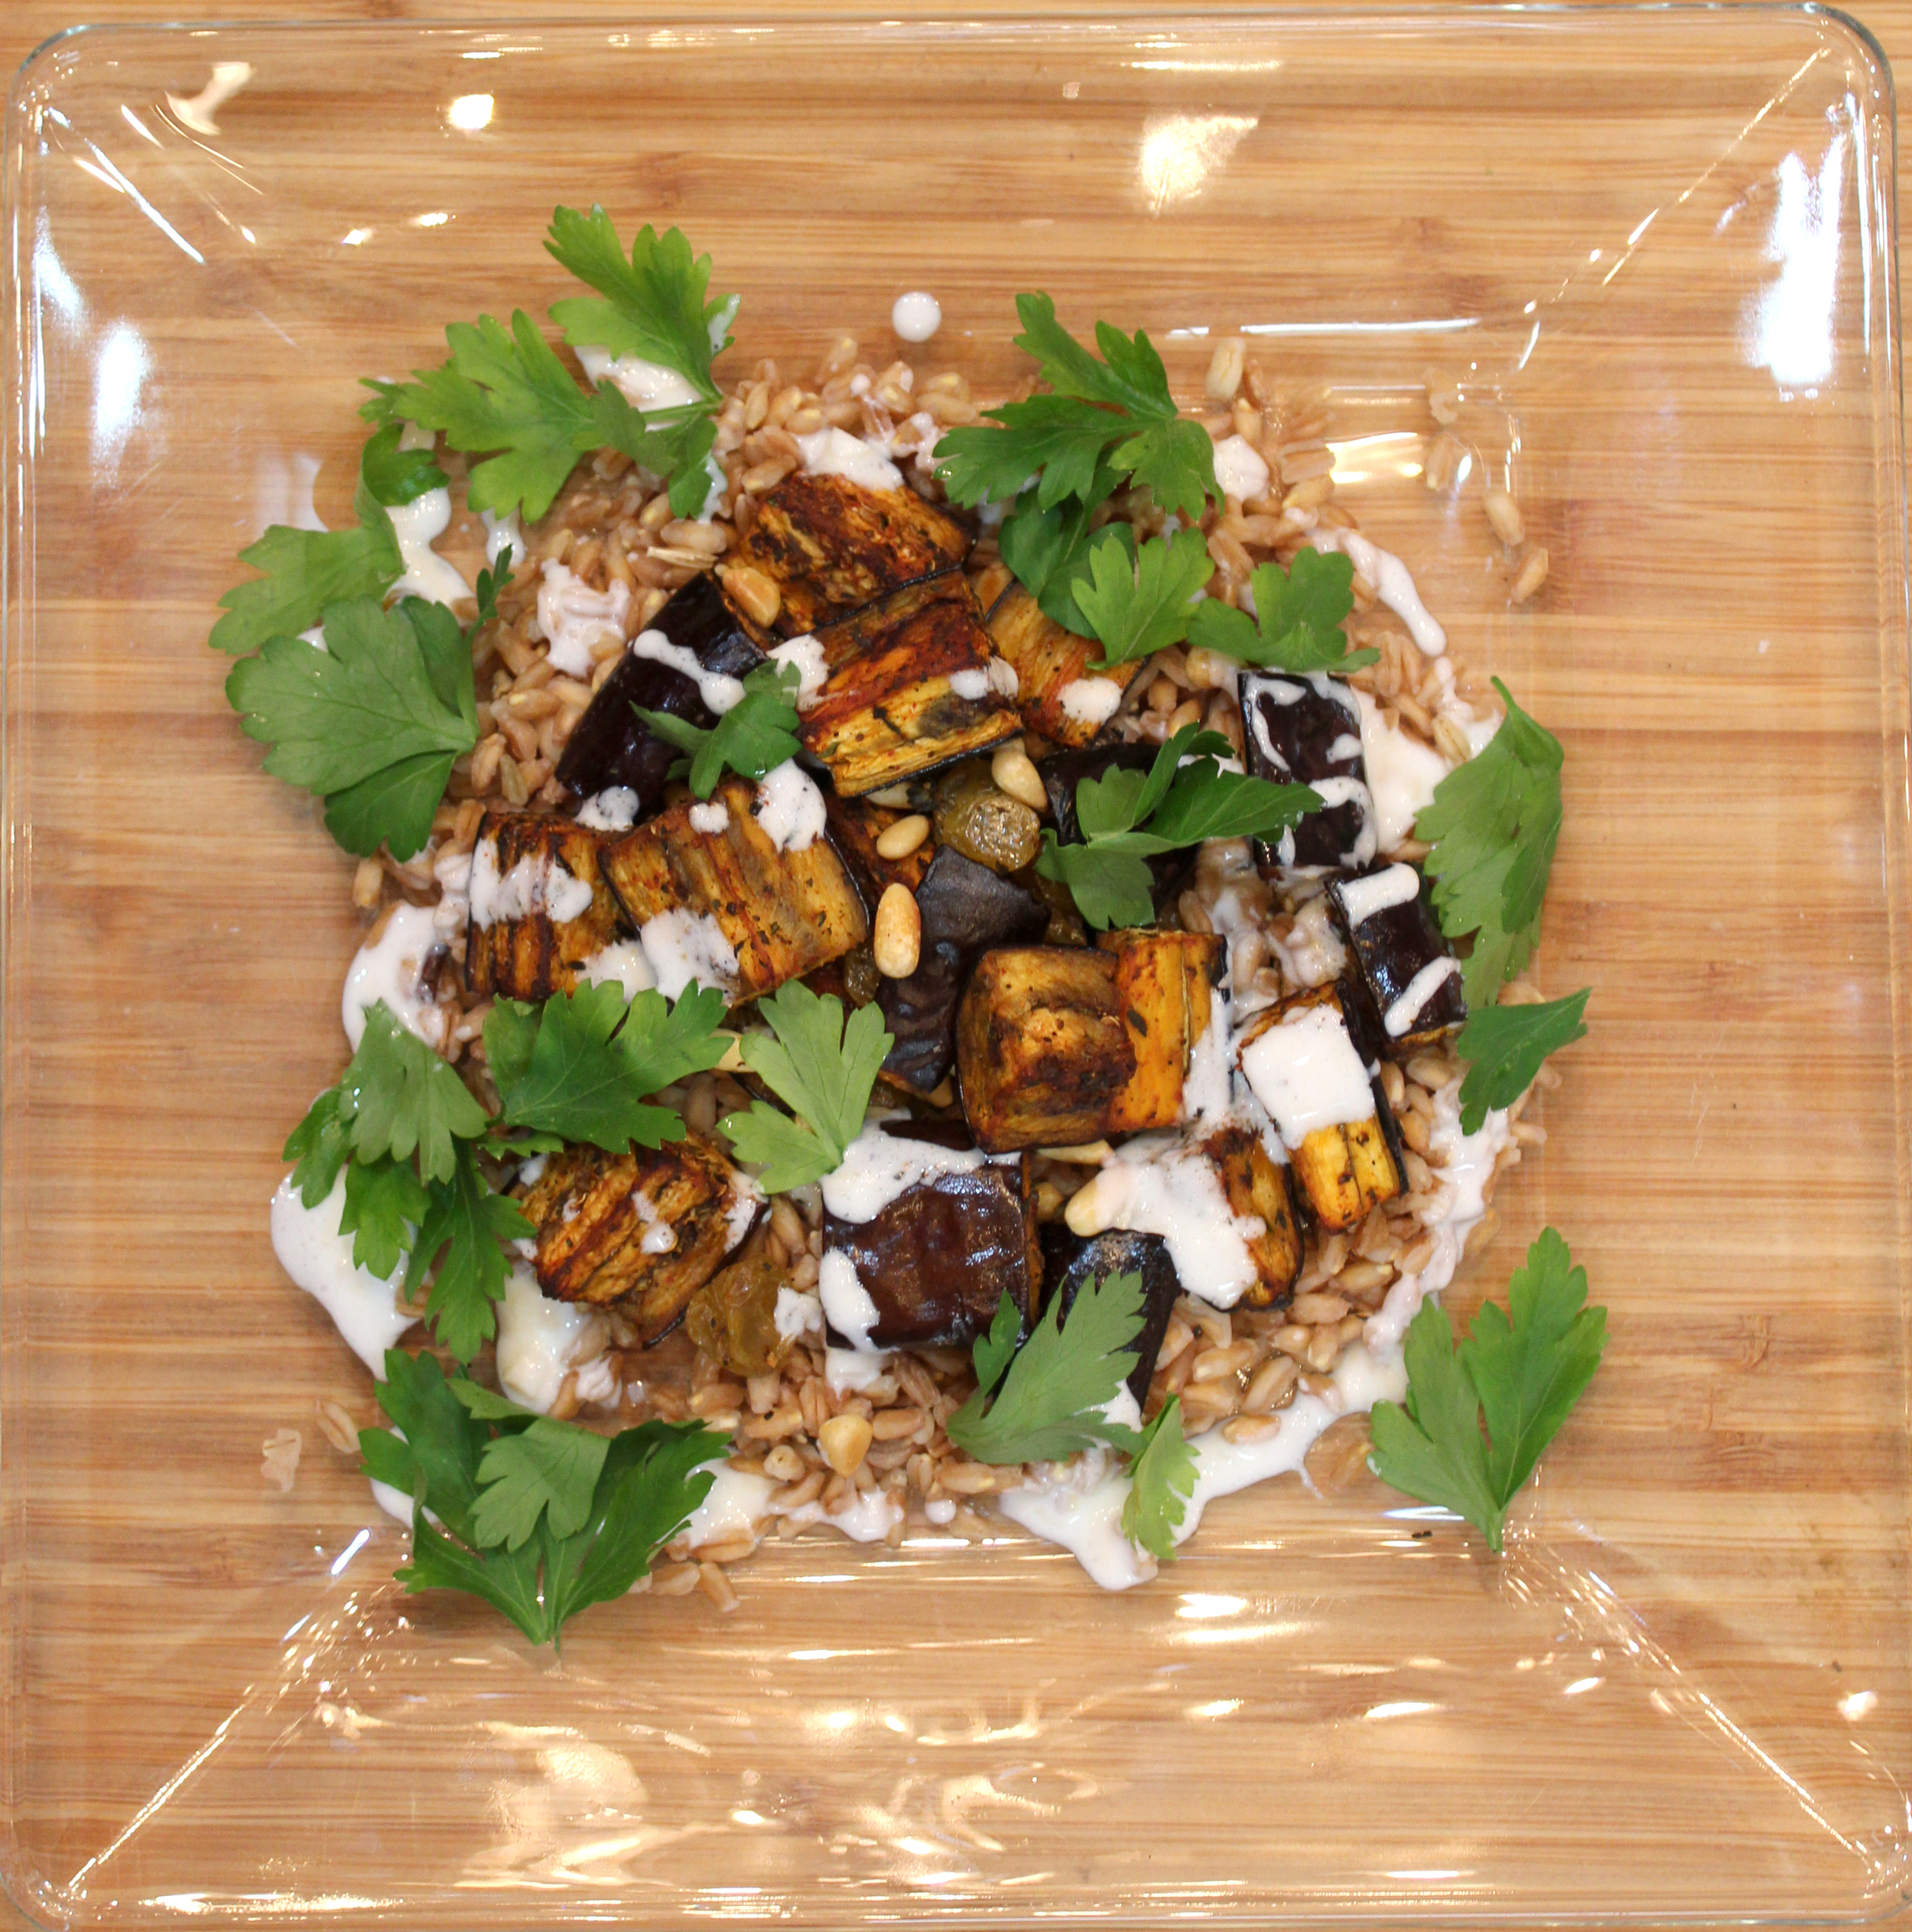 Roasted eggplant with toasted barley and yogurt sauce